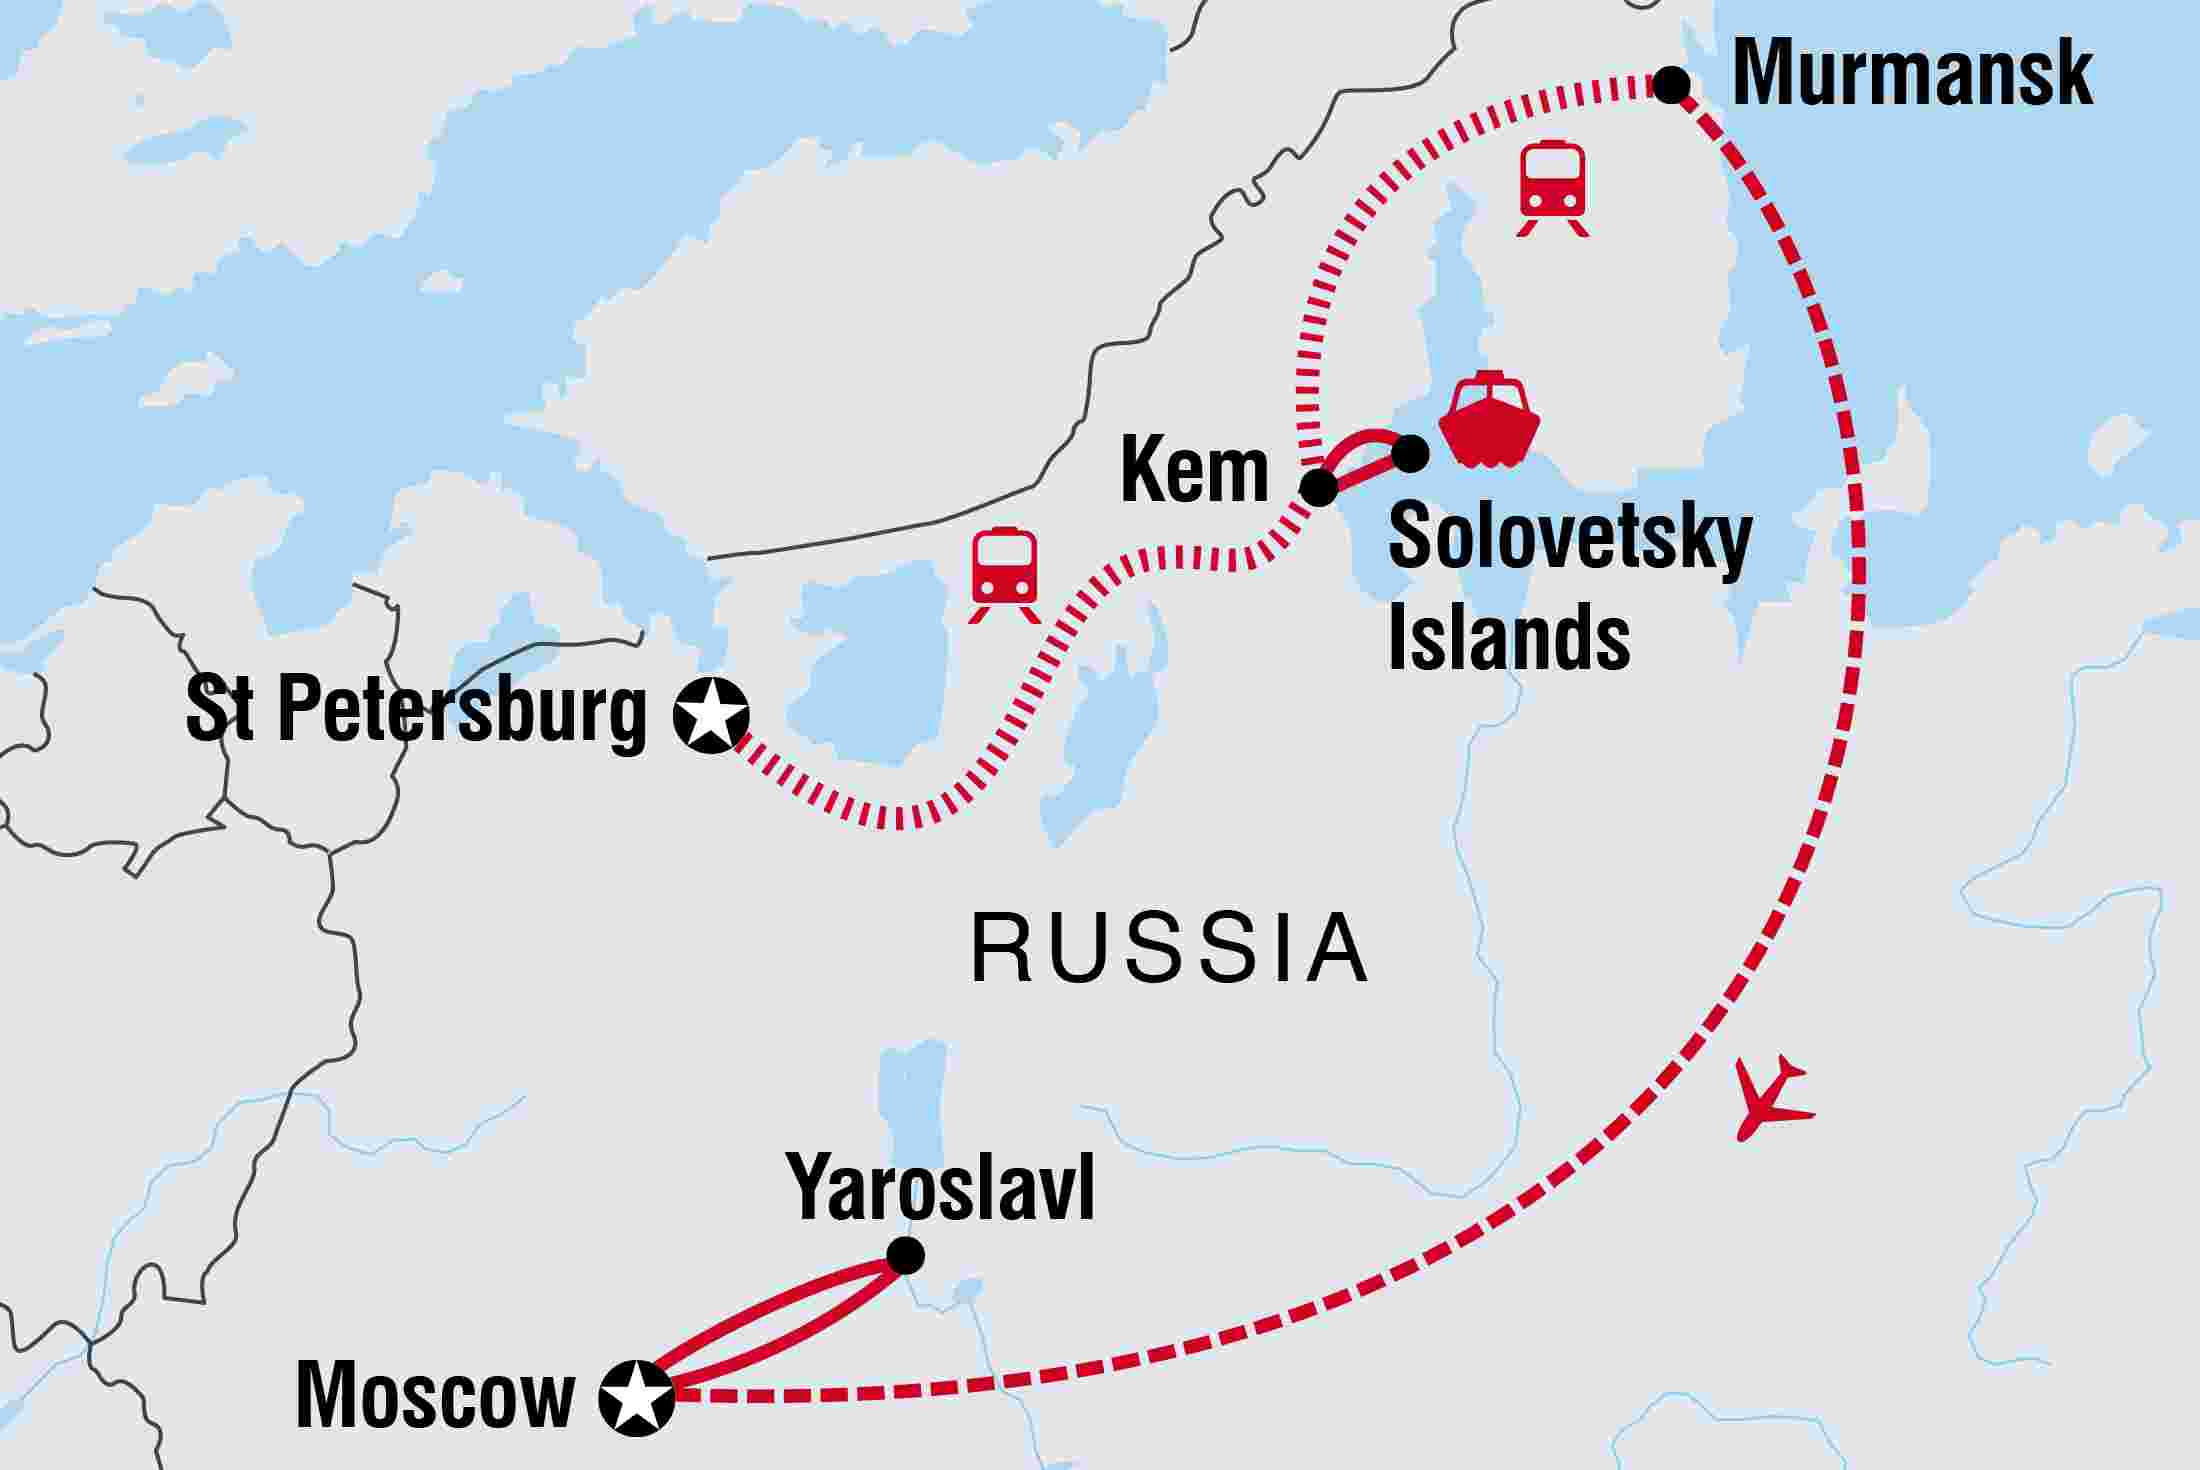 Russia Tours & Travel